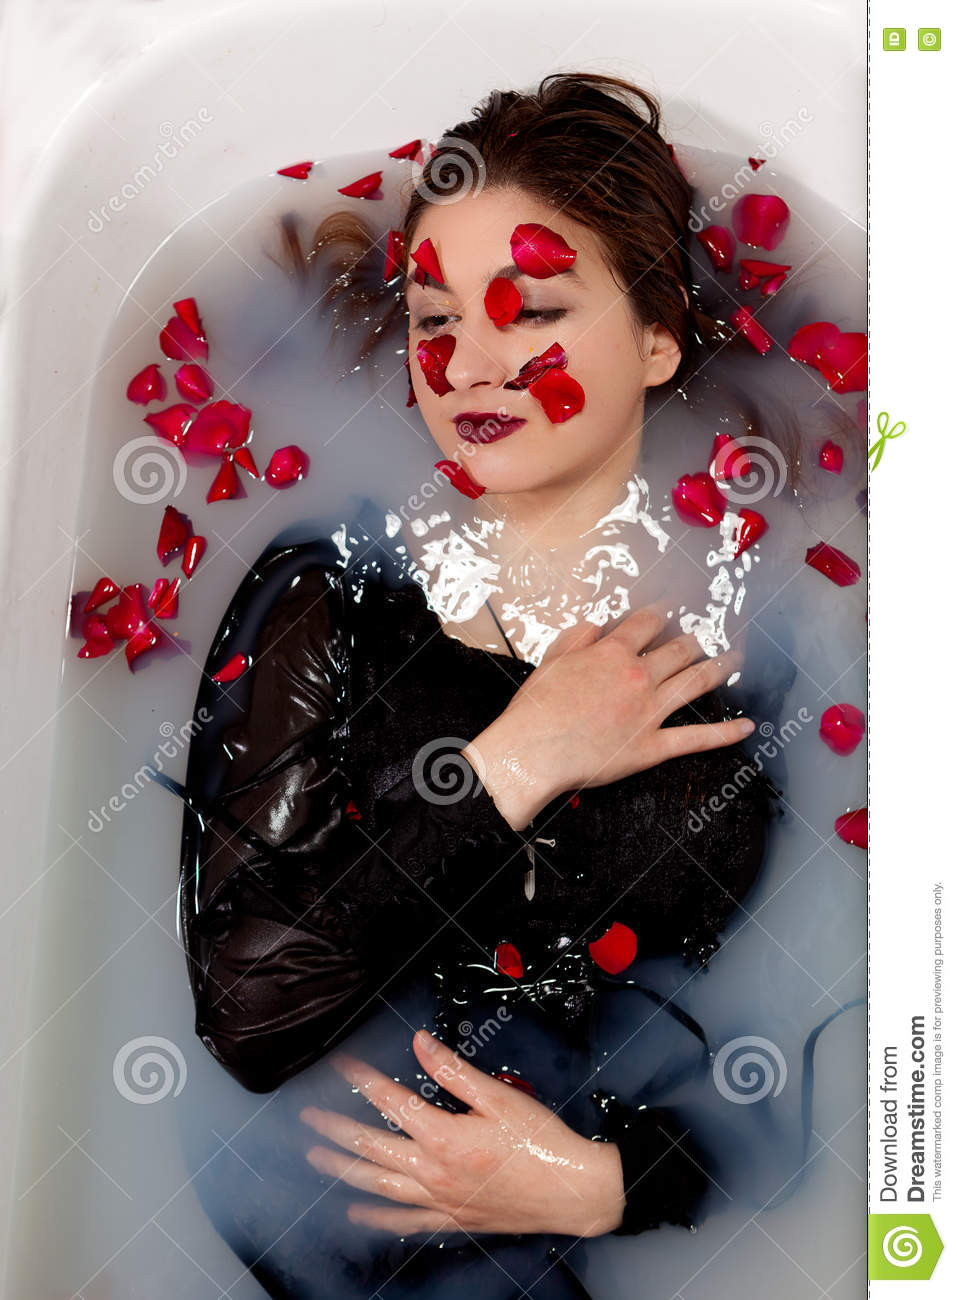 e4e37dc18ee Girl with a black dress enjoying a white milk bath with red rose leaves in  the water and on her face